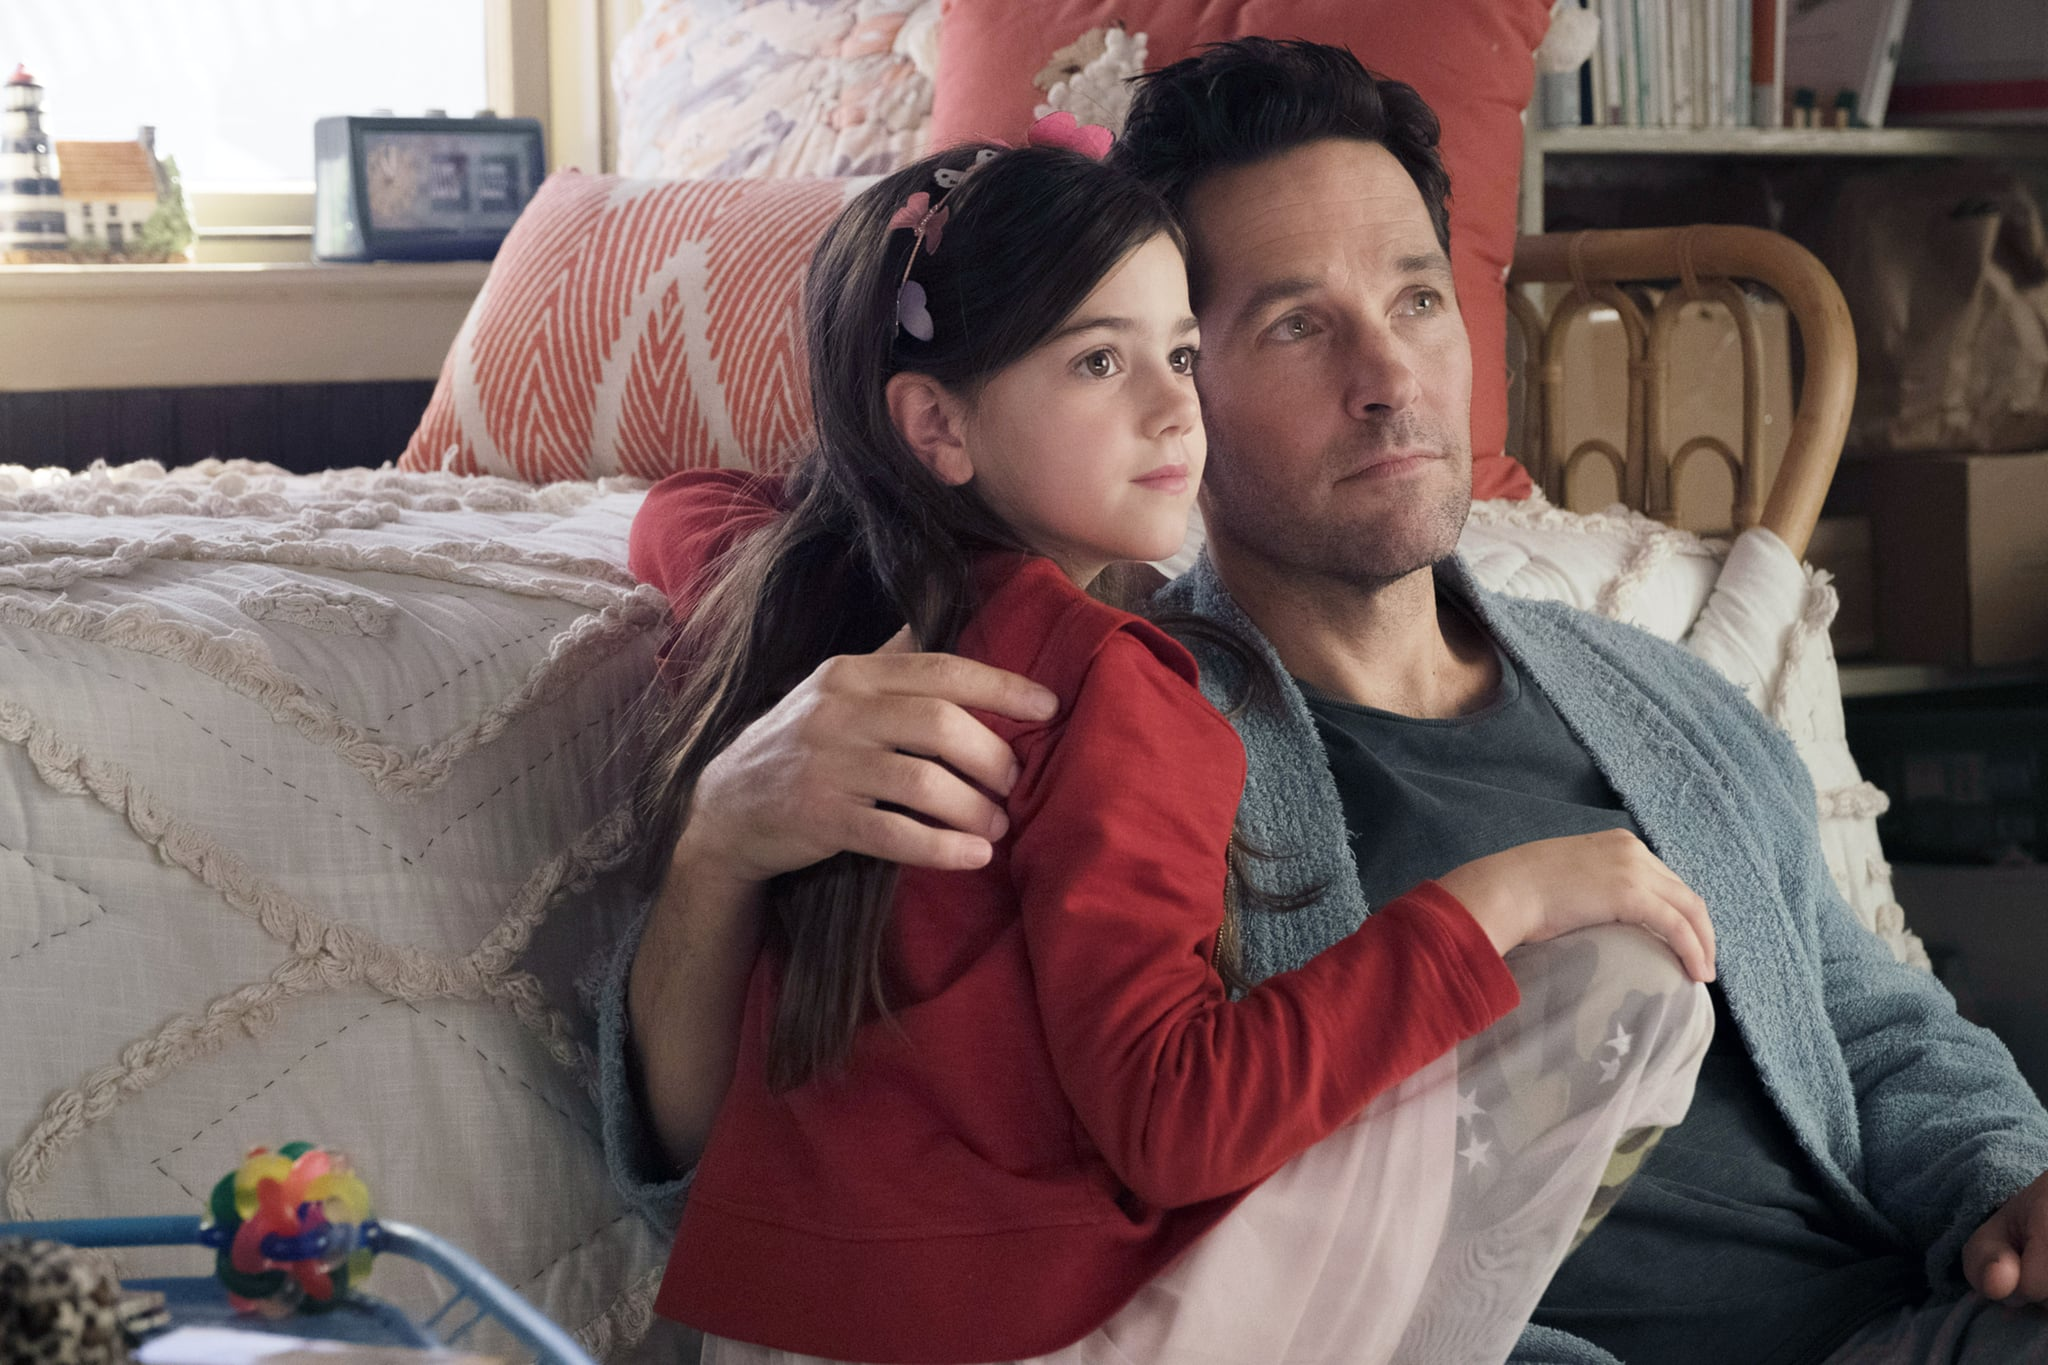 ANT-MAN AND THE WASP, from left: Abby Ryder Fortson, Paul Rudd, 2018. ph: Ben Rothstein / Marvel / Walt Disney Studios Motion Pictures /Courtesy Everett Collection